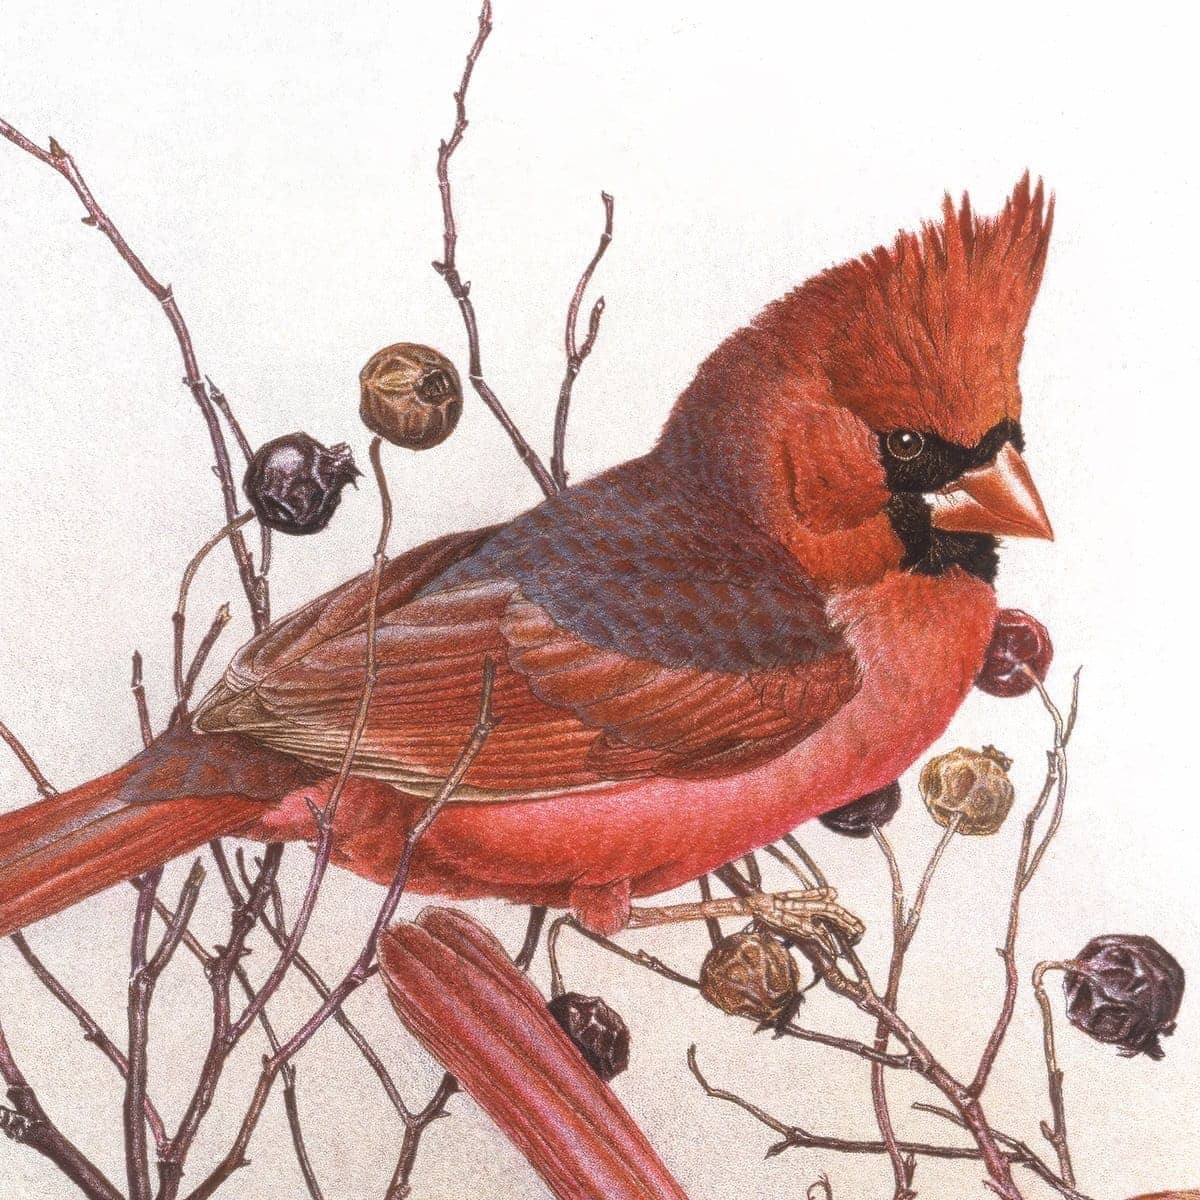 Cardinals In Nut Tree - Art Print by Glen Loates from the Glen Loates Store